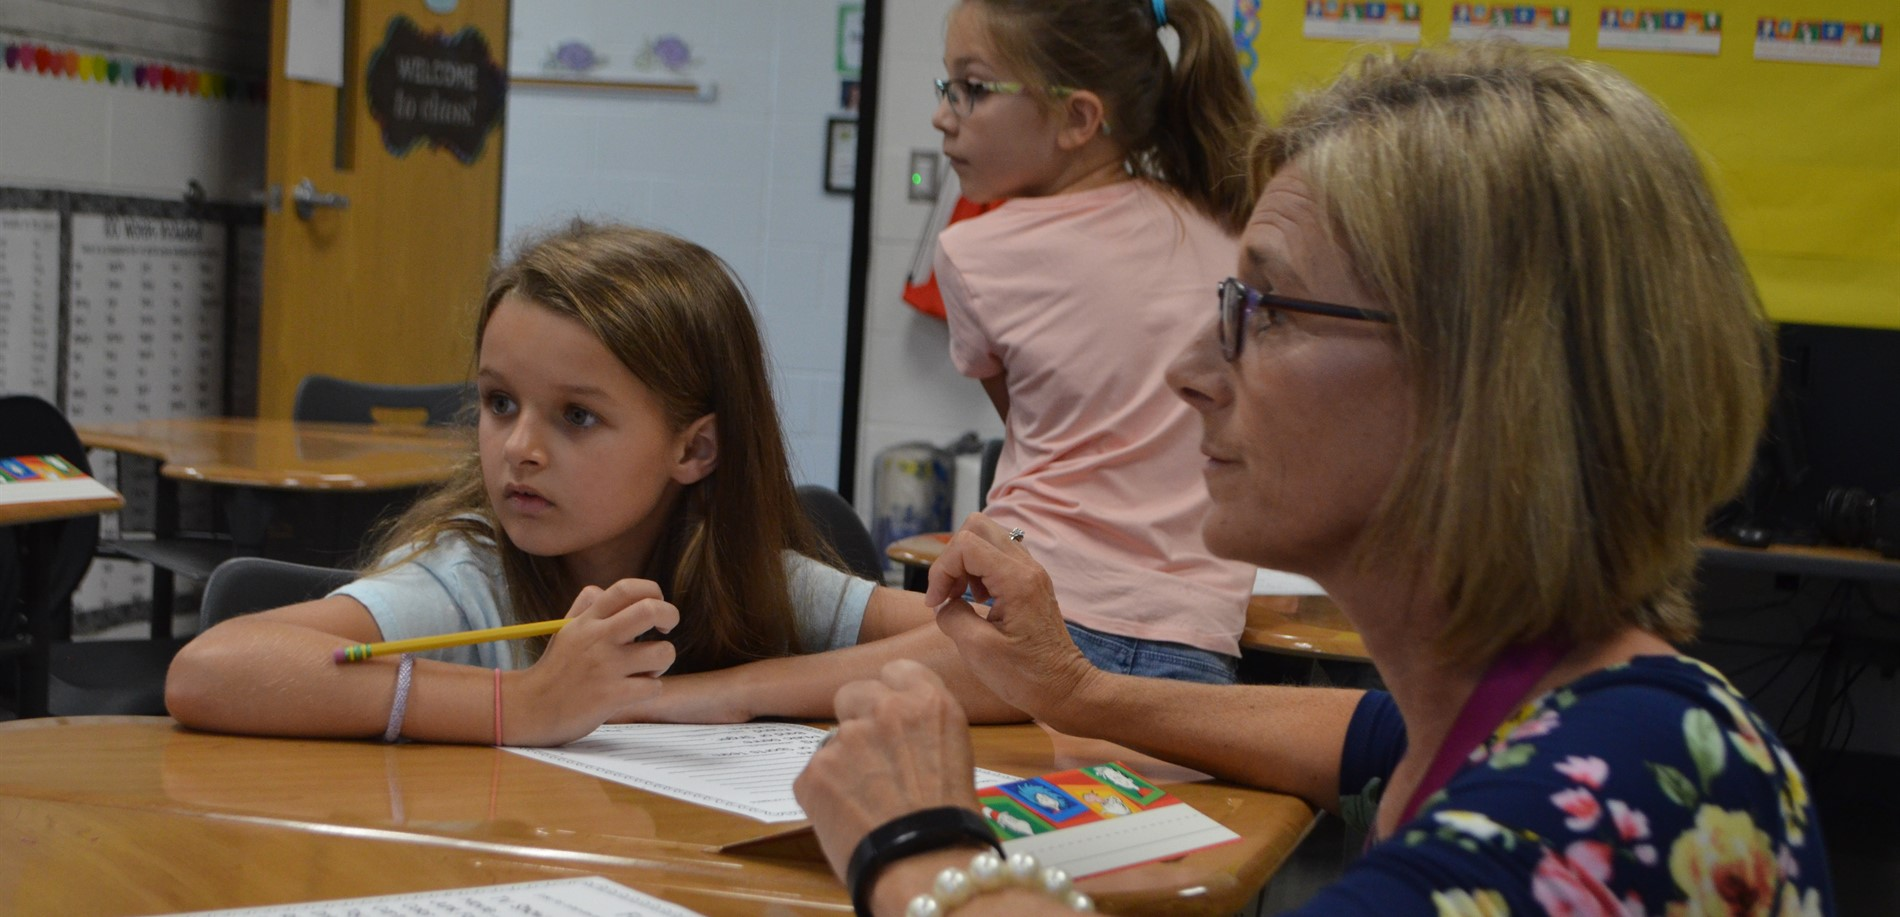 Ms. Nall works closely with her students at Cecilia Valley Elementary School.